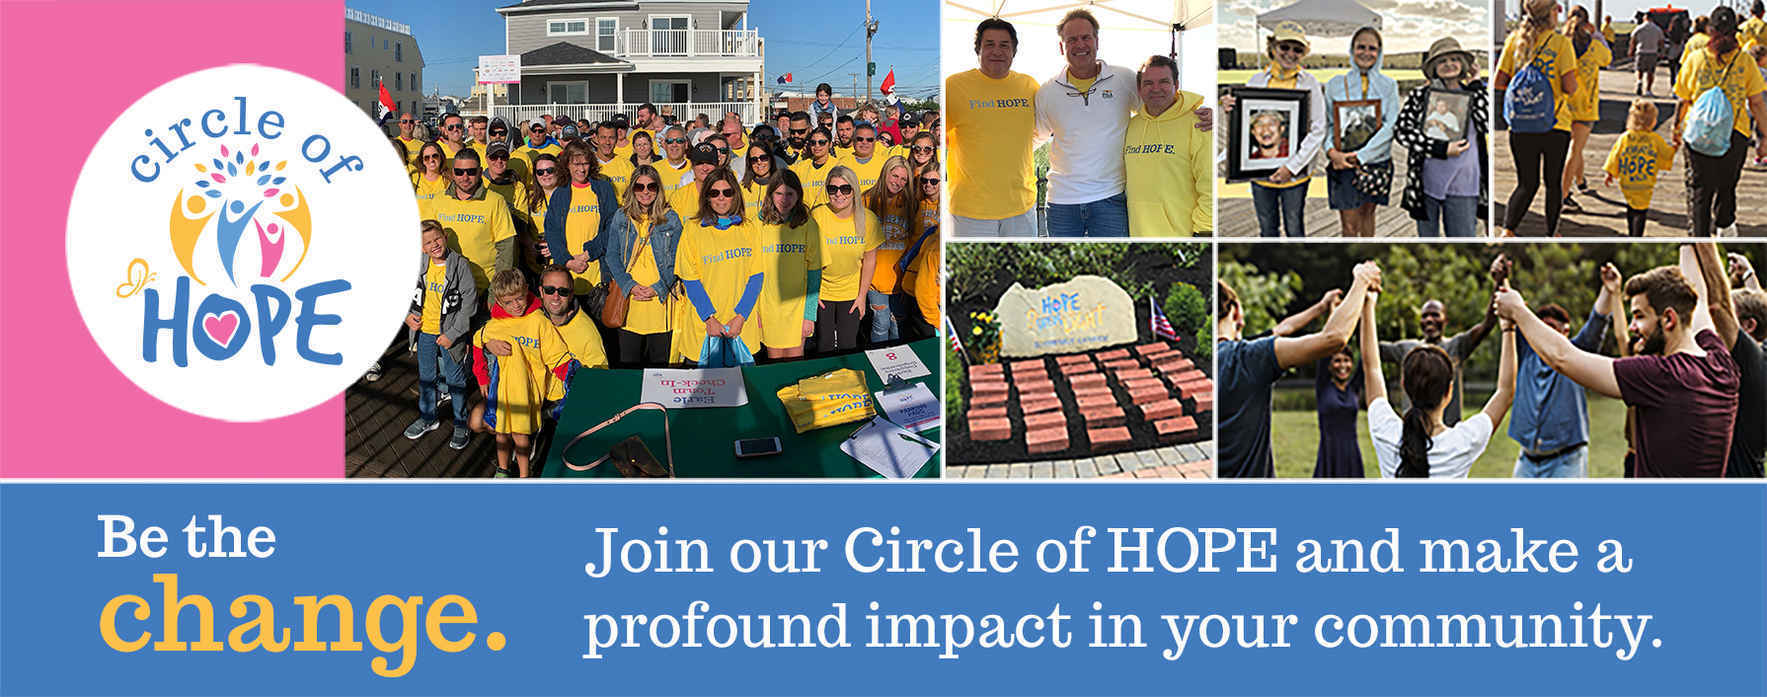 Join the Circle of HOPE image